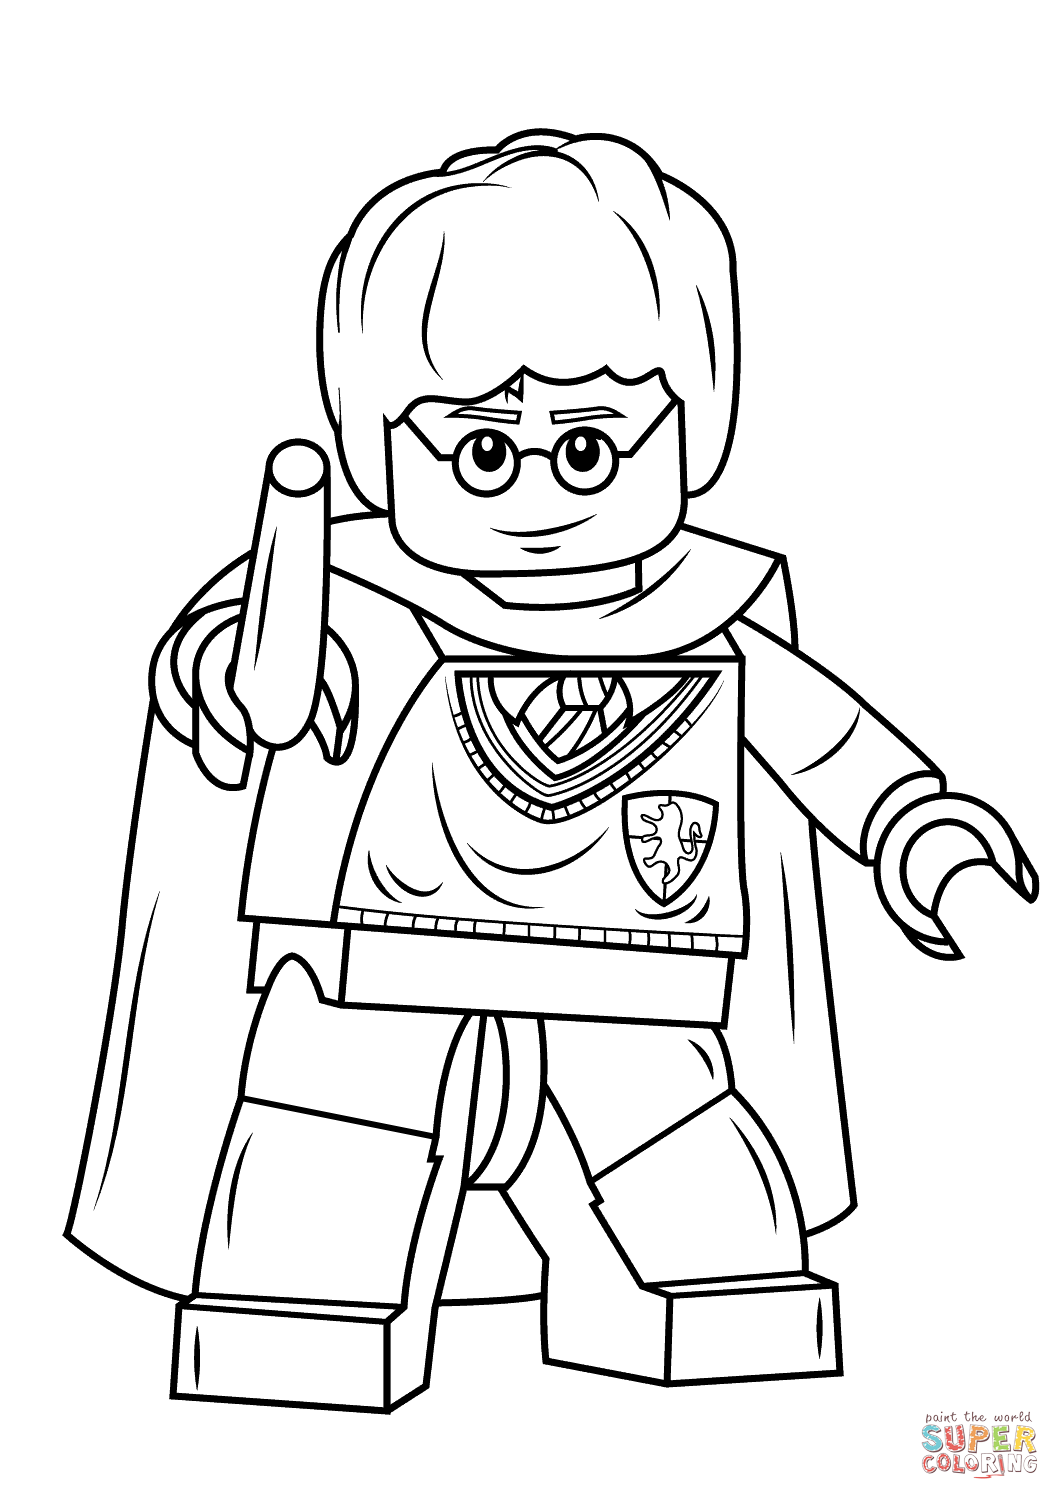 Lego Harry Potter With Wand Coloring Page Png 1 060 1 500 Pixels Harry Potter Colors Lego Coloring Pages Harry Potter Coloring Pages